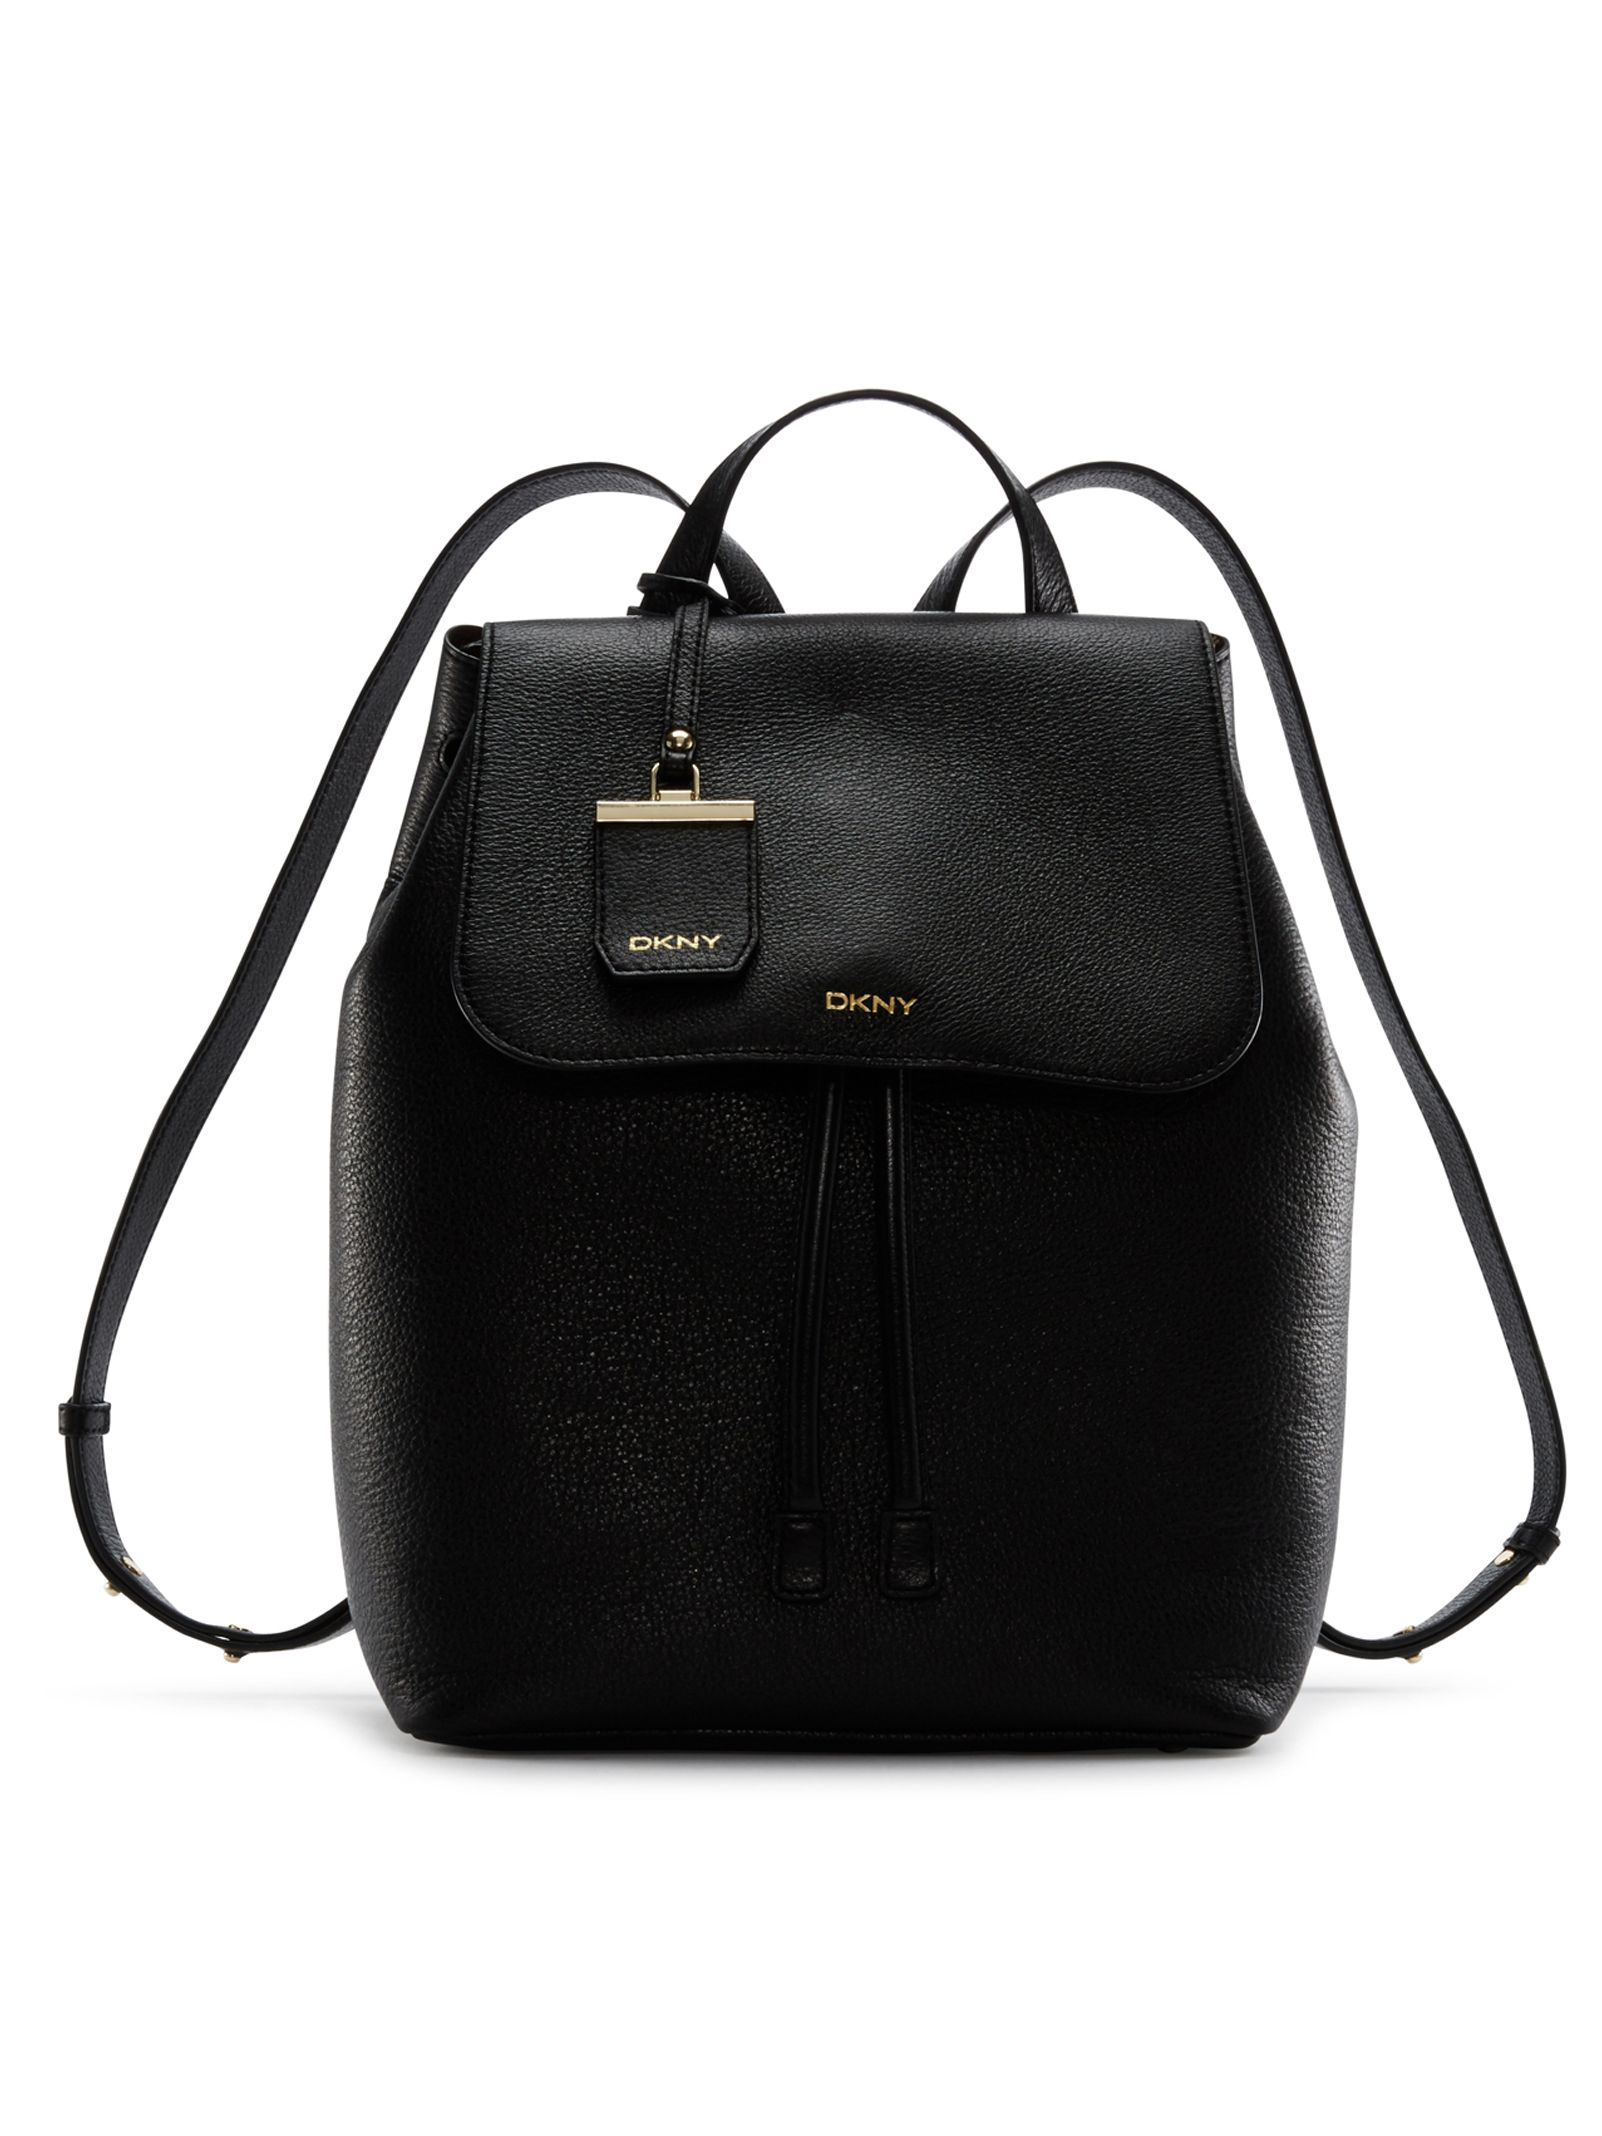 749efc6a3 DKNY: Fine Pebble Leather Backpack, BLACK | Totes and Bags | Leather ...